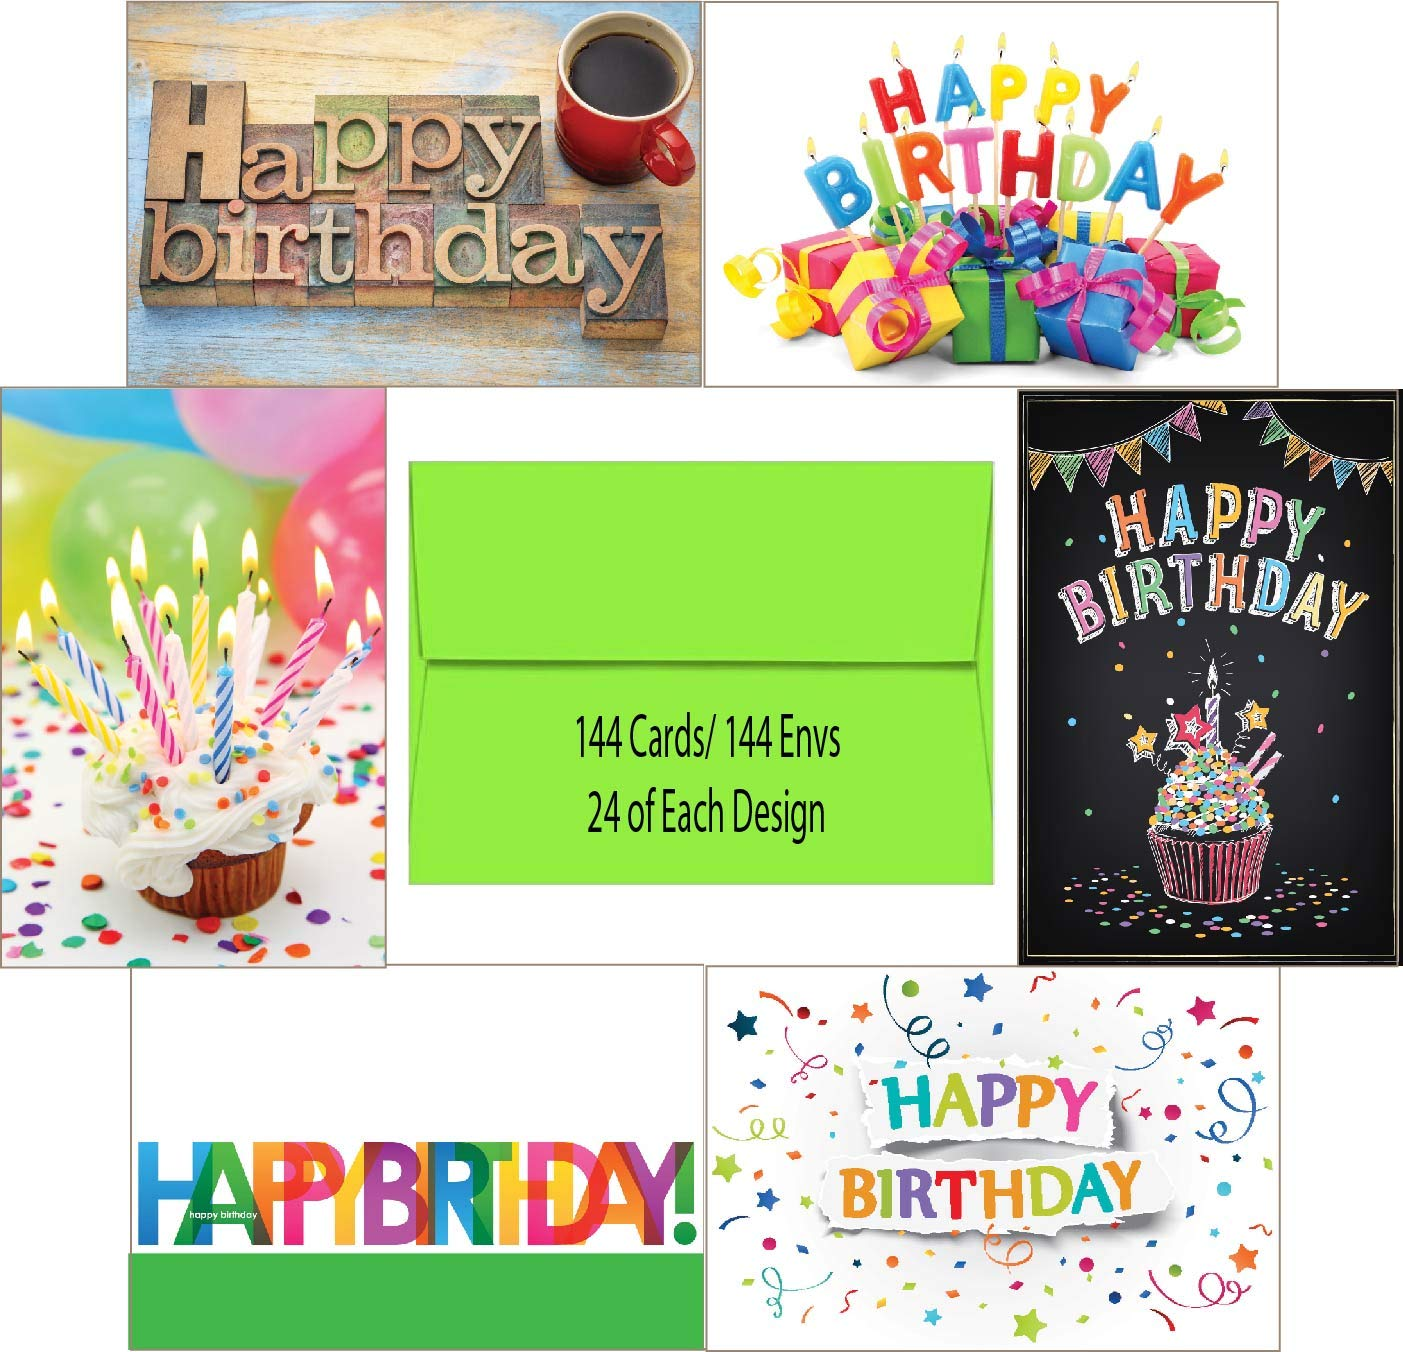 144 Blank Birthday Card Assortment Box Set Bulk with A4 Envelopes and Cards 24 Each Design for Employees, Office, or Clients, Blank Inside, Made in USA by Lone Star Greetings